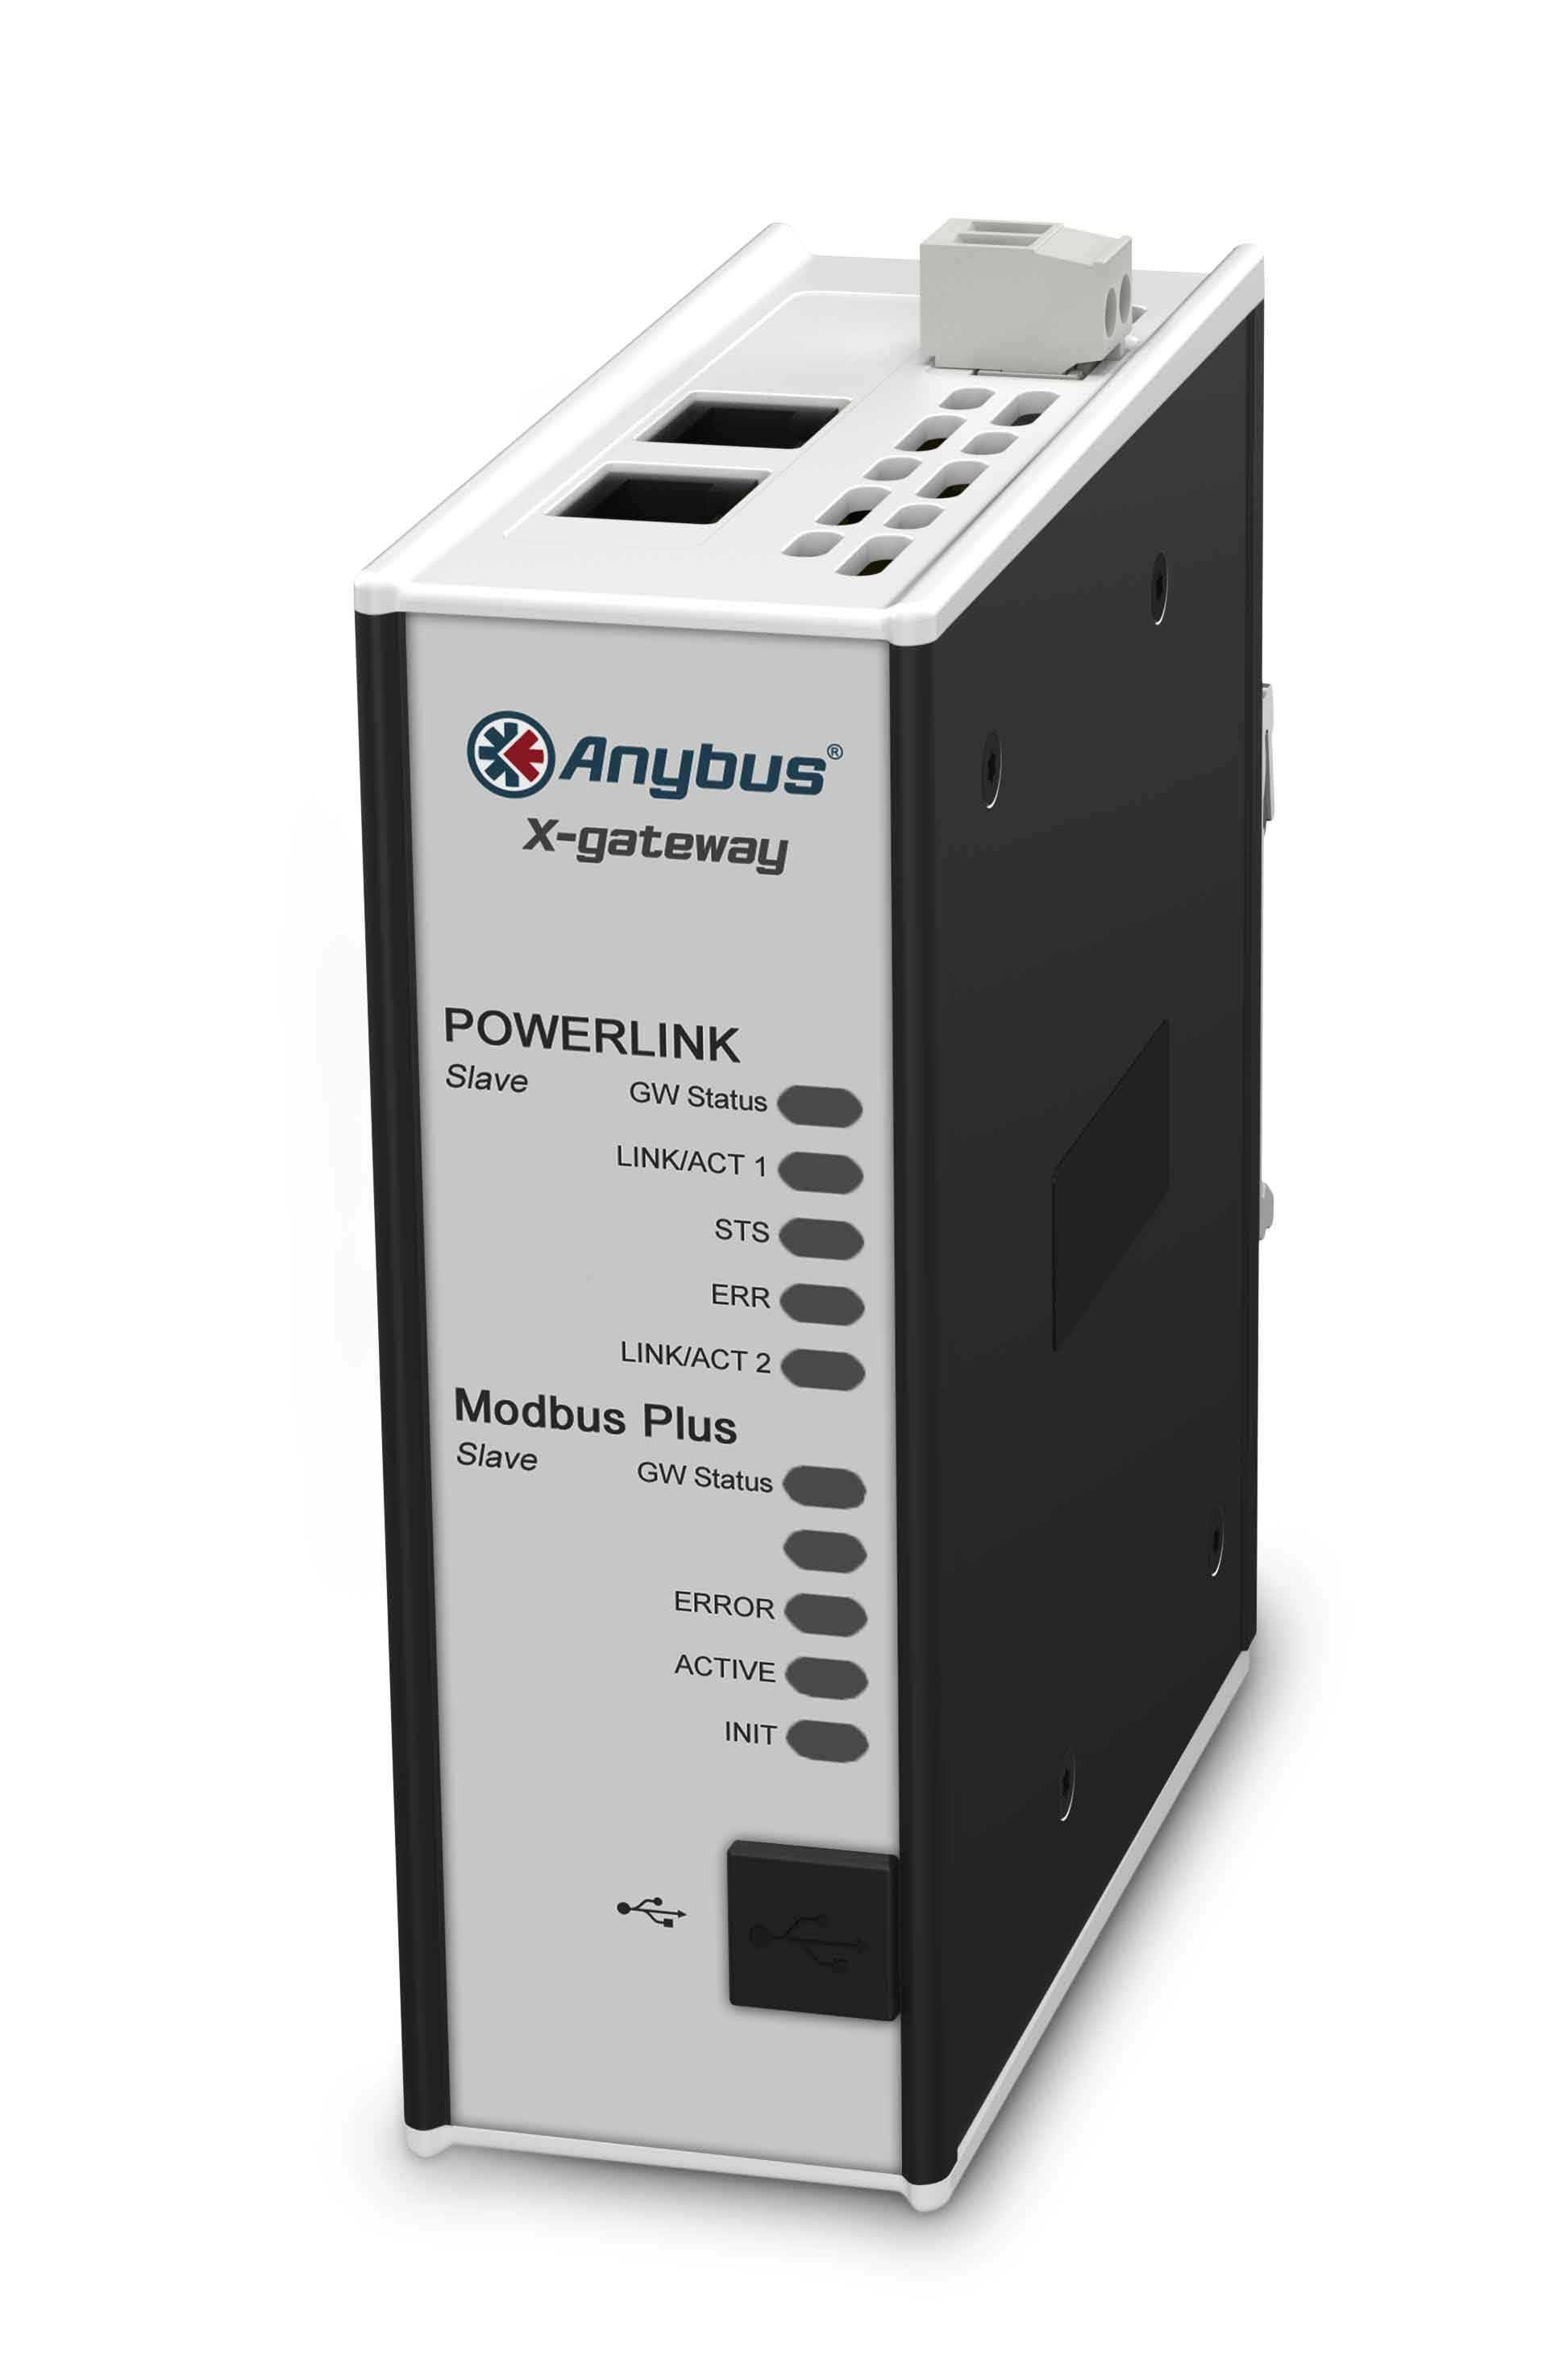 Modbus Plus Slave - POWERLINK Device - AB7539-F